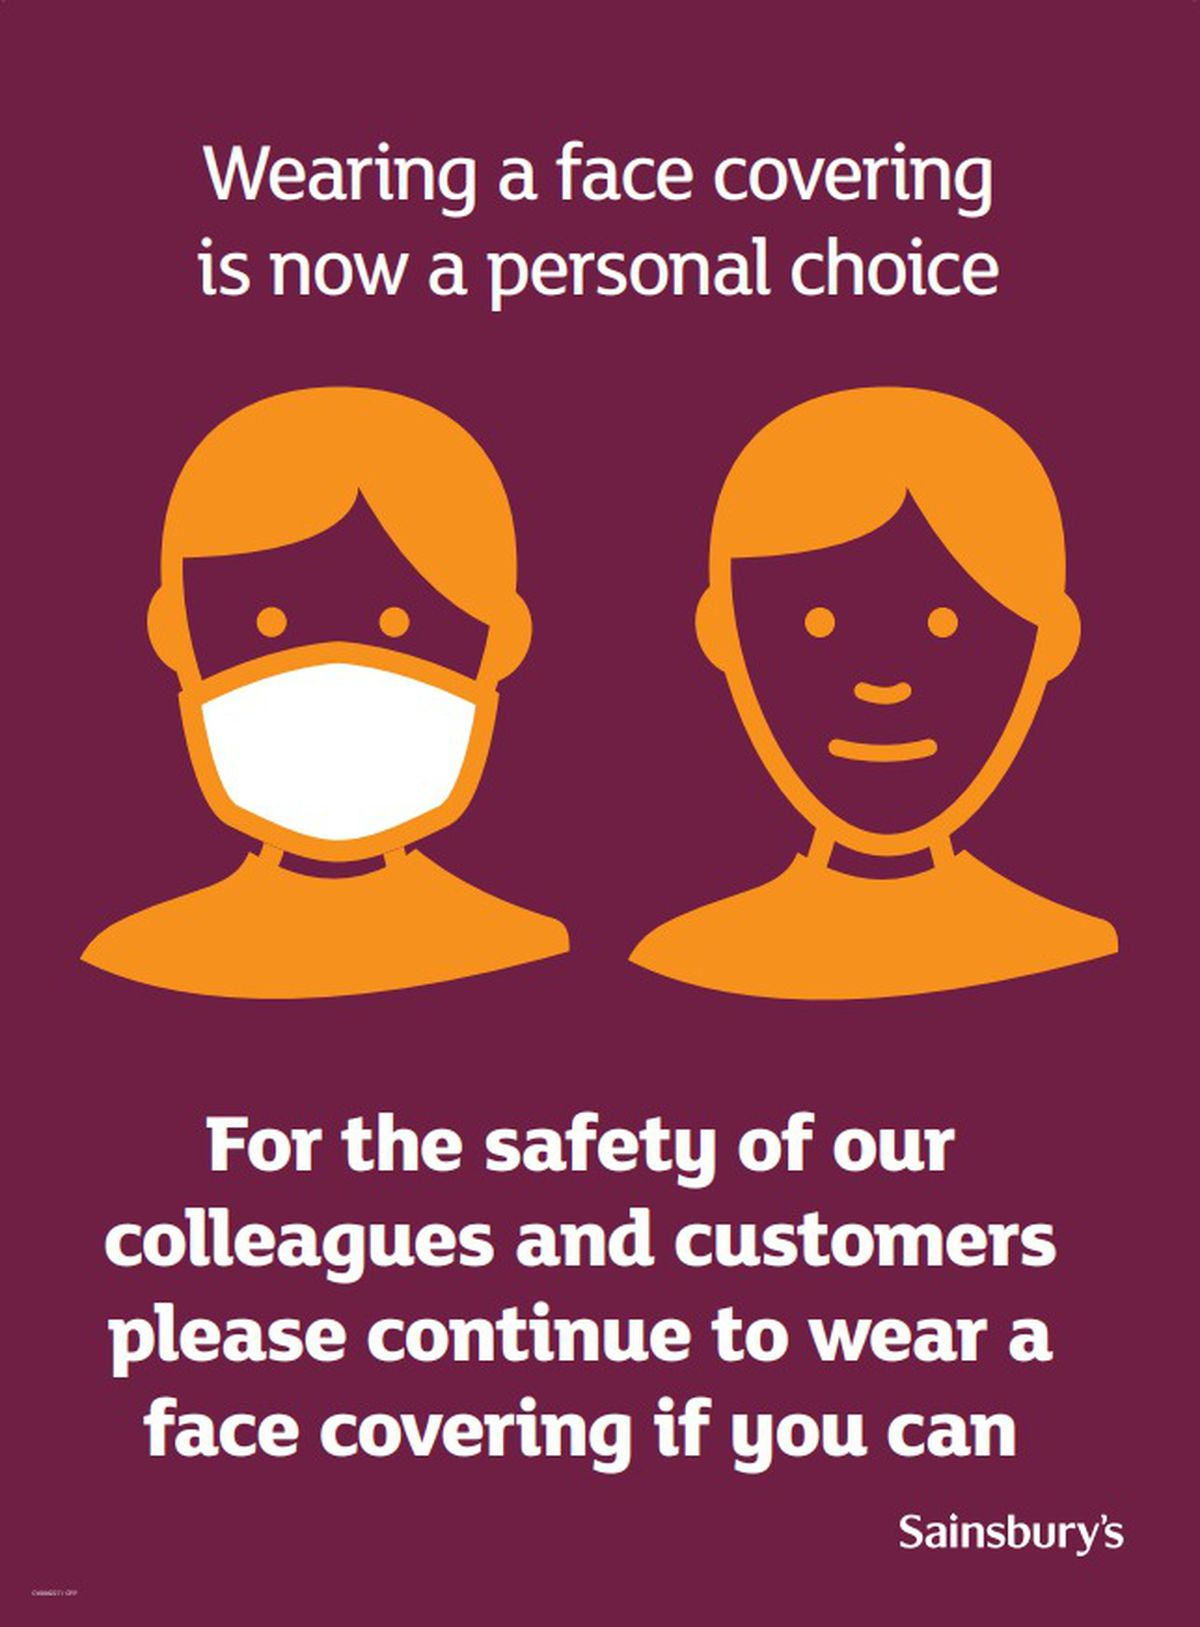 Sainsbury's wants customers to continue to wear masks